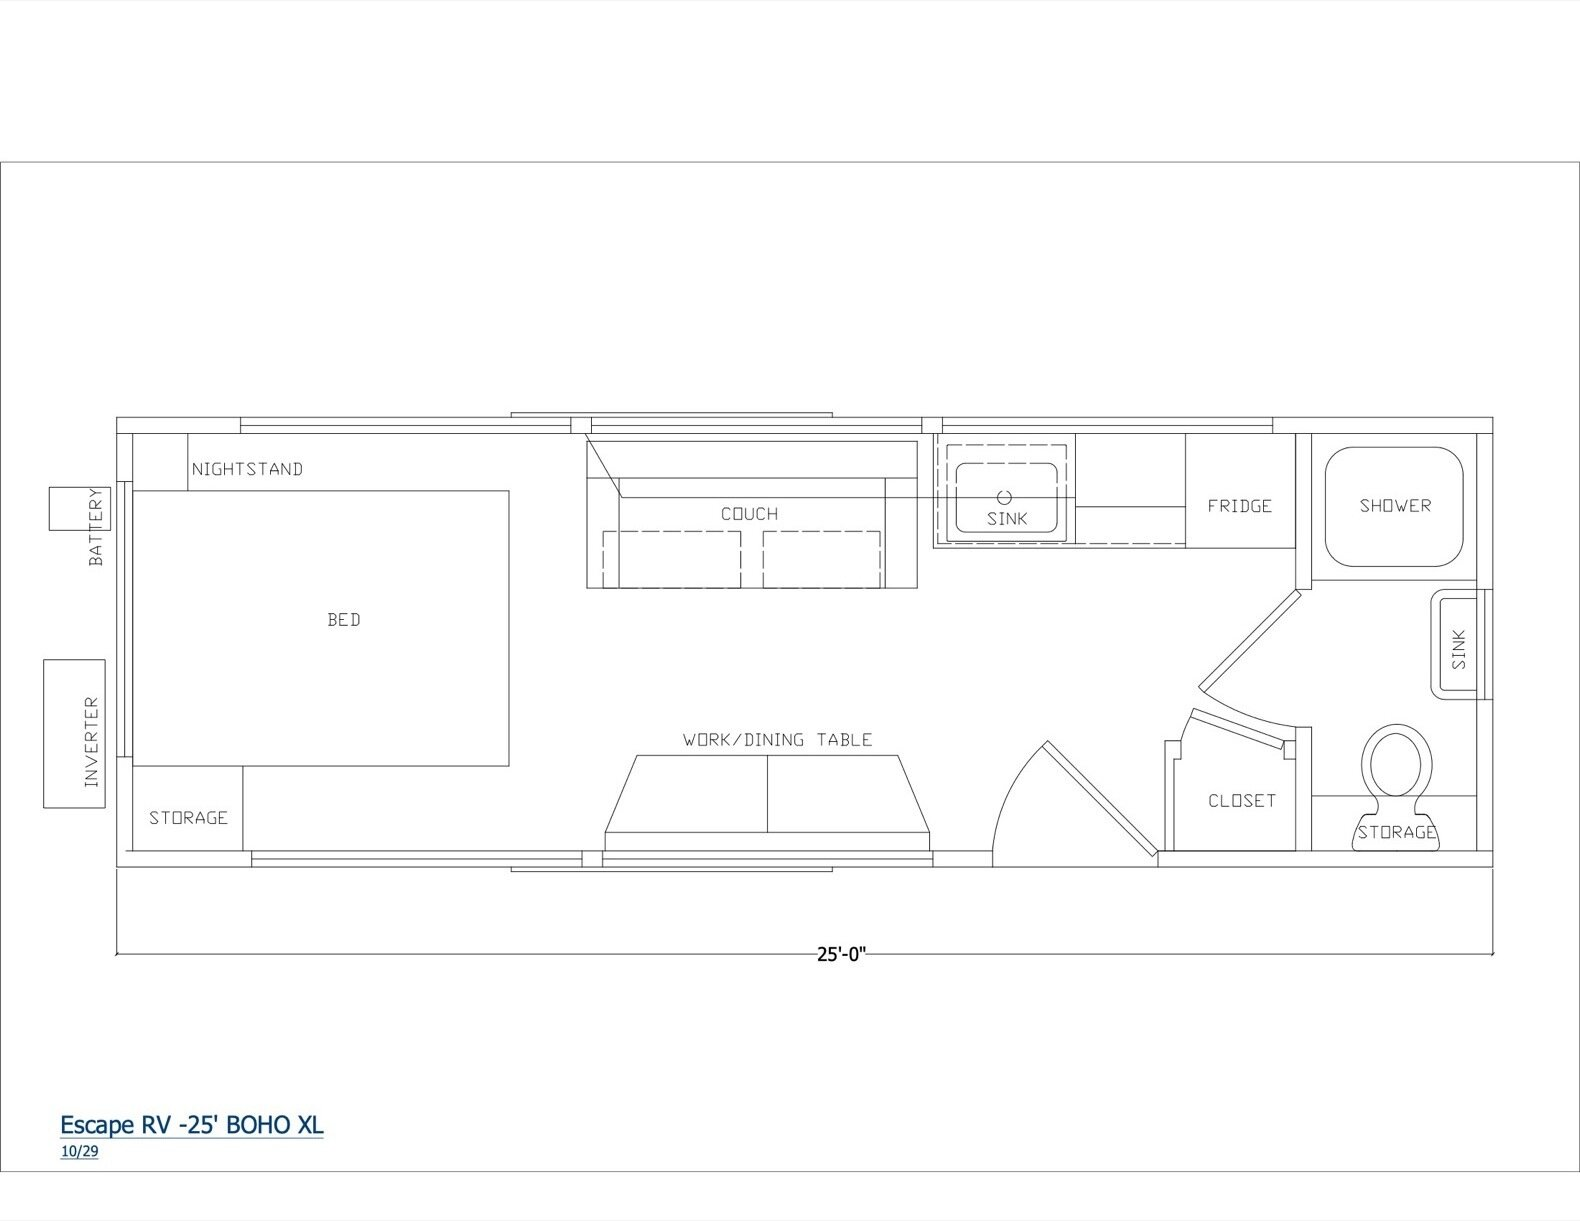 Floor plan of a standard ESCAPE BOHO XL model